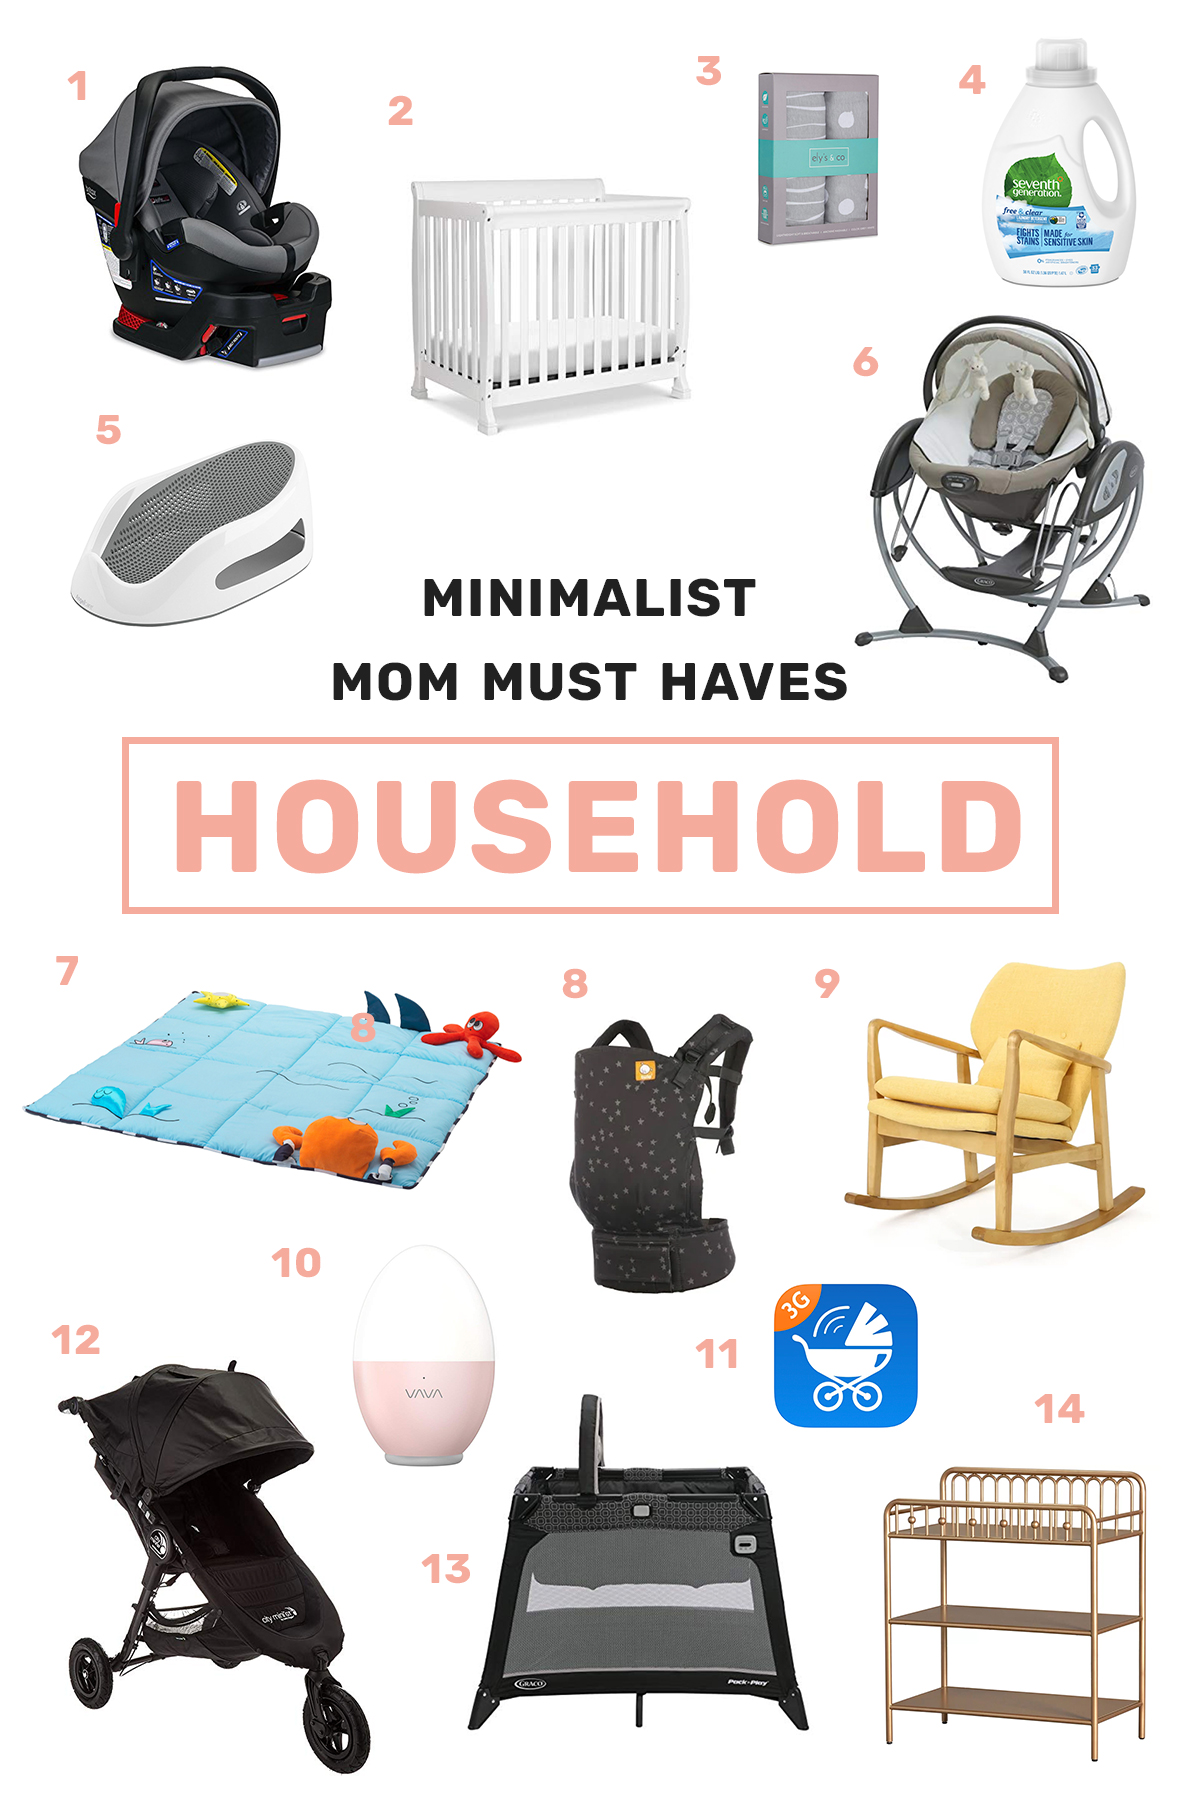 minimalist_mom_must_haves_household.jpg